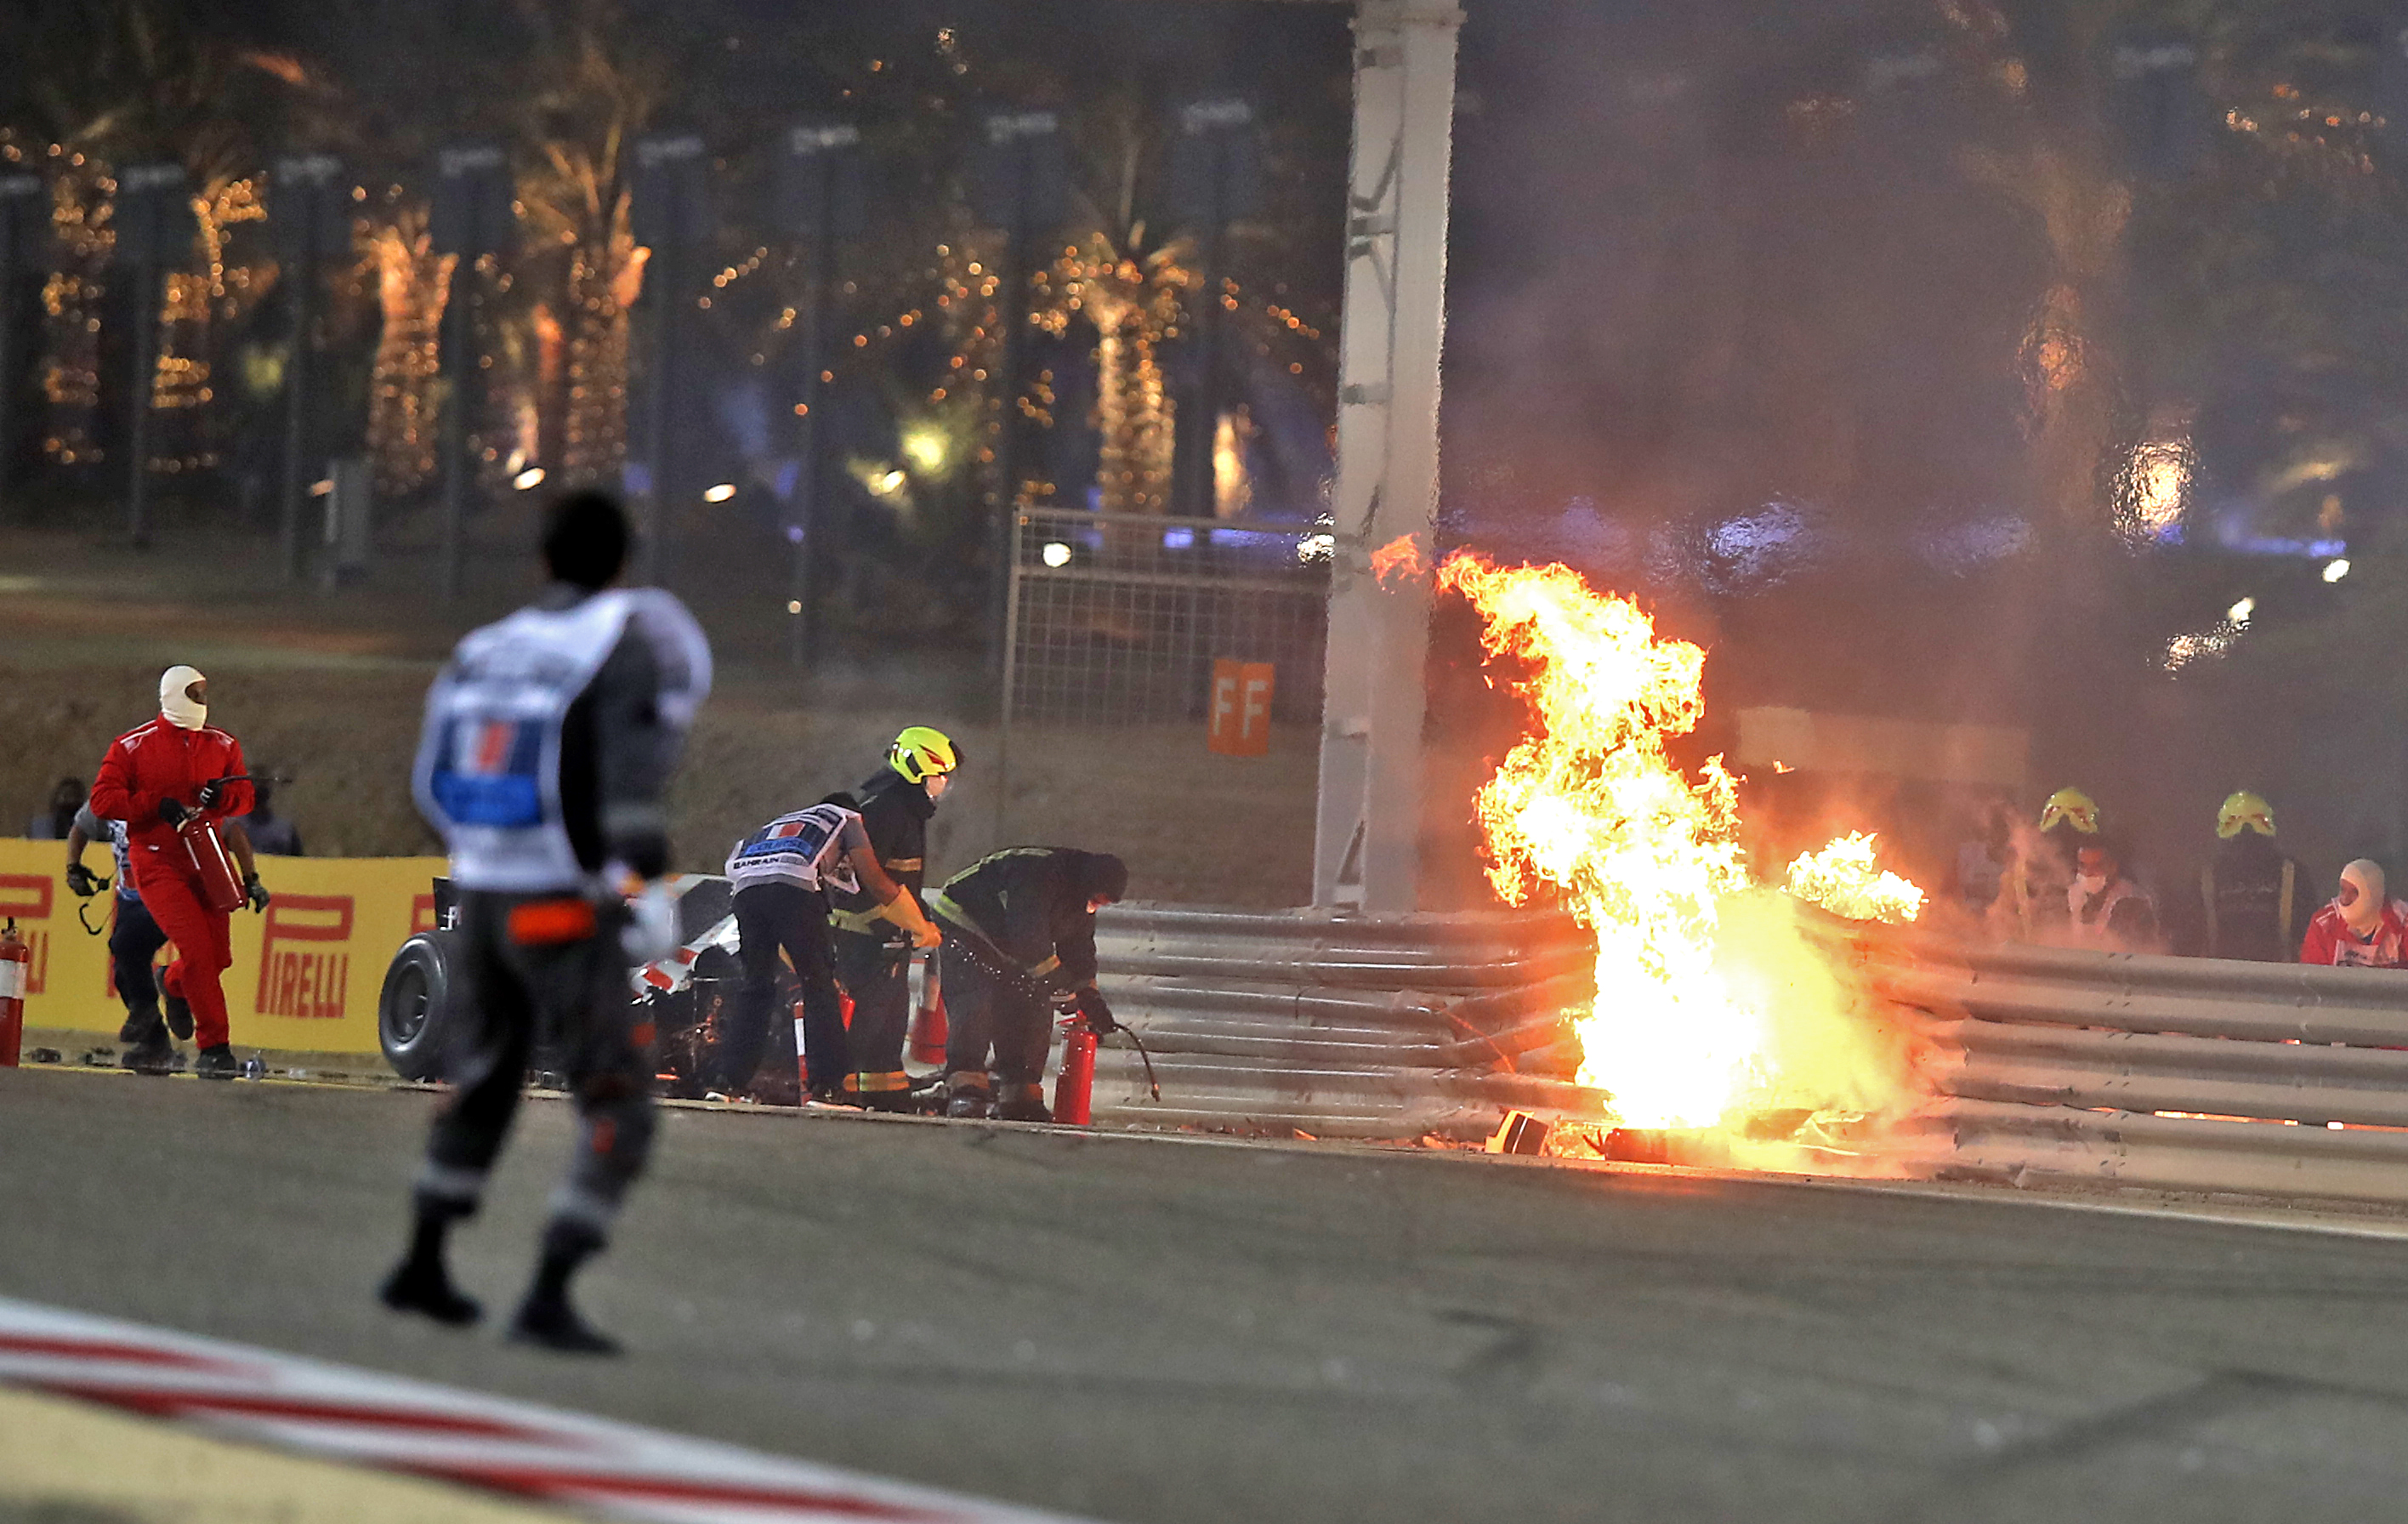 Romain Grosjean hails halo as the 'greatest thing' in F1 after horrific crash at Bahrain GP